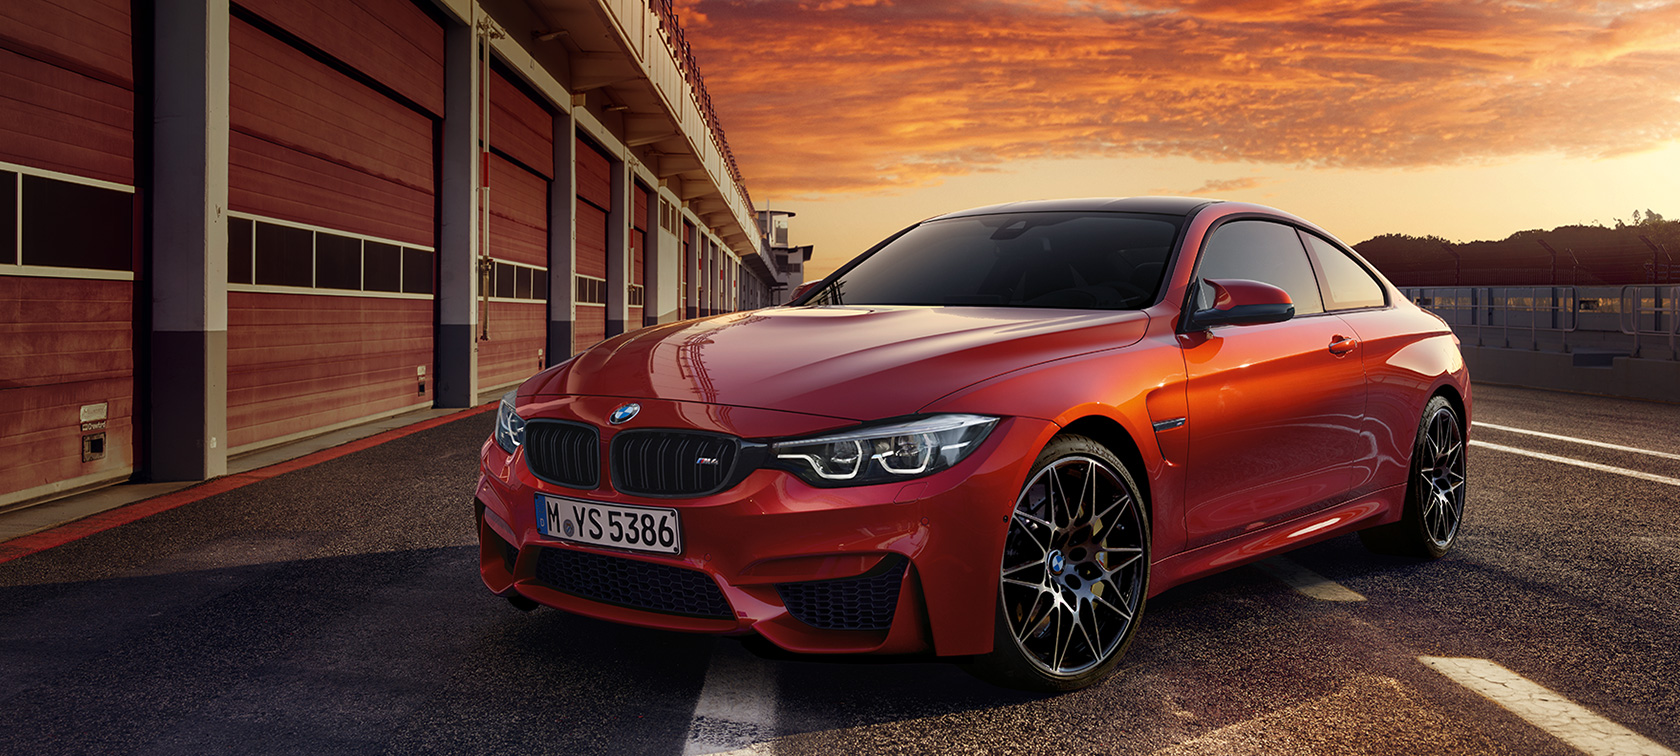 Bmw M4 Coupe >> Bmw M4 Coupe Tasarim